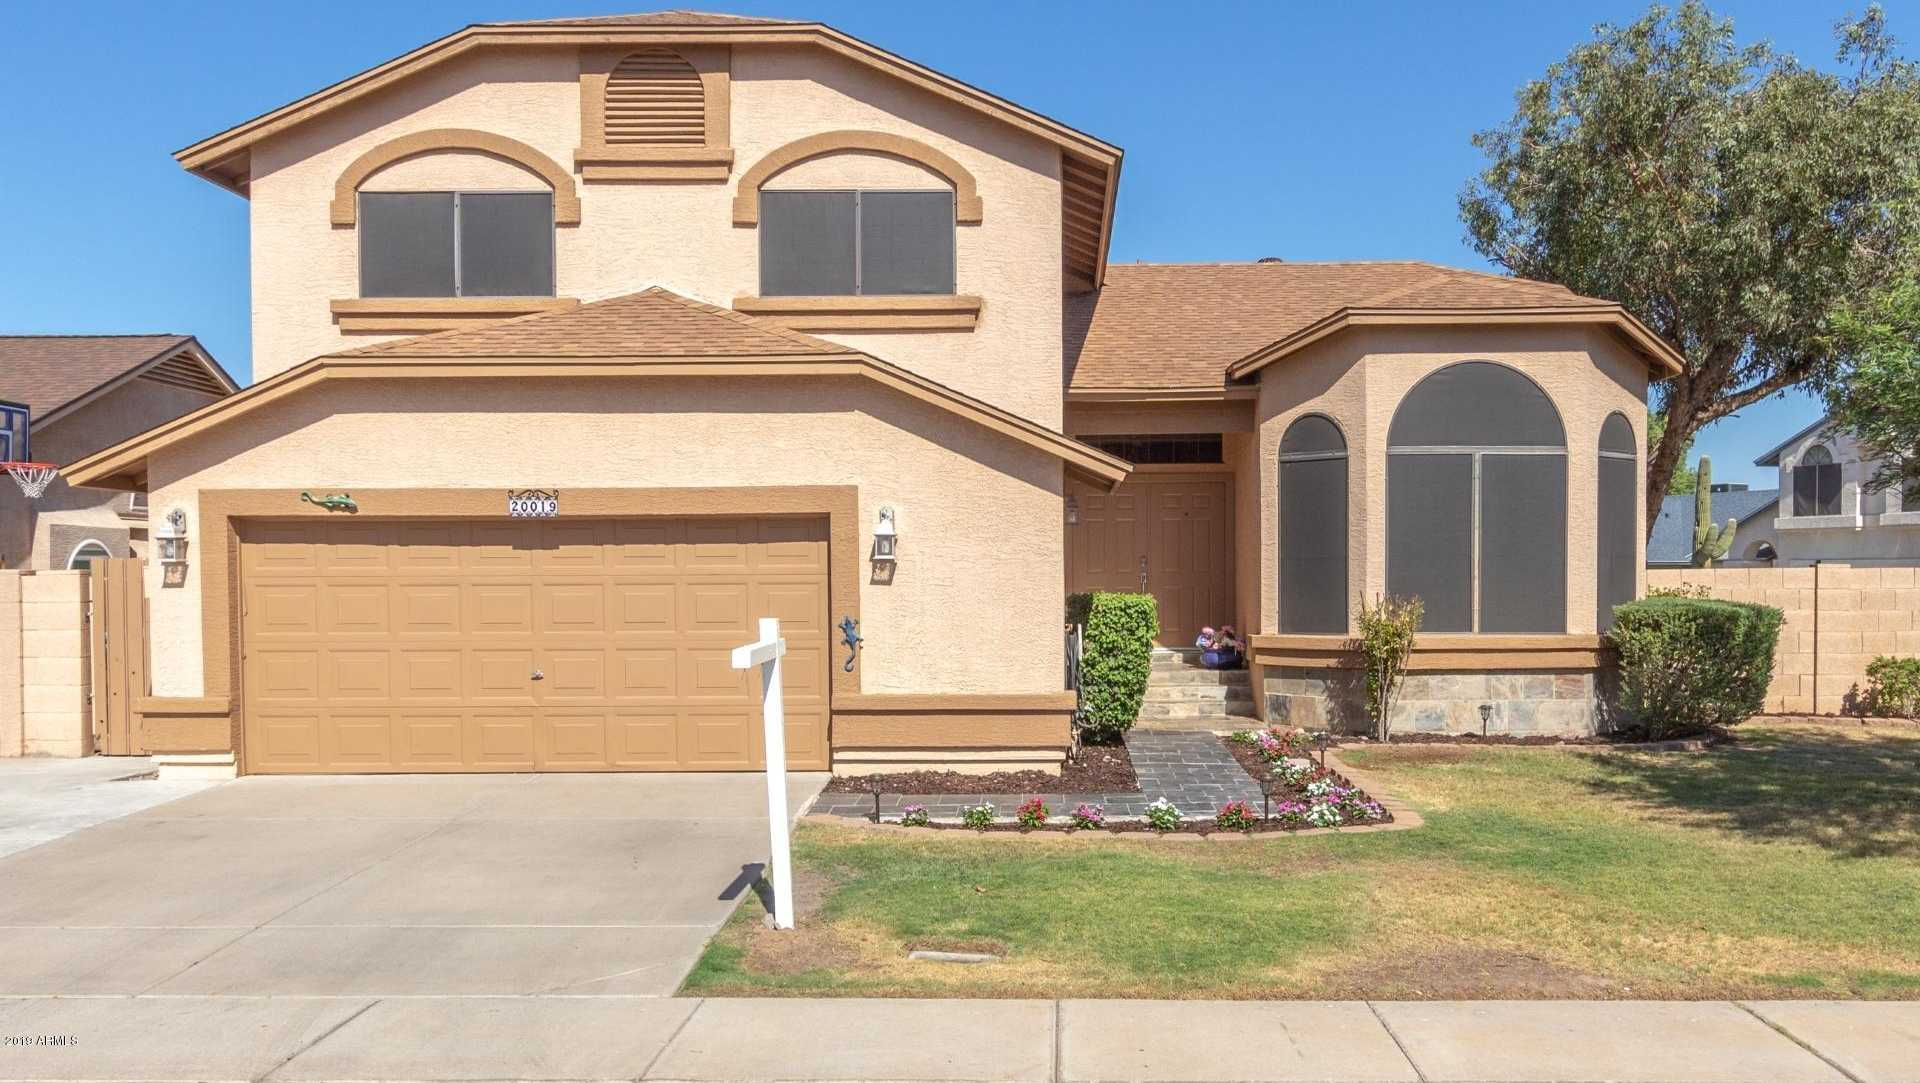 $355,000 - 4Br/3Ba - Home for Sale in Overland Trail 6 Lt 1-229 Tr A-k, Glendale